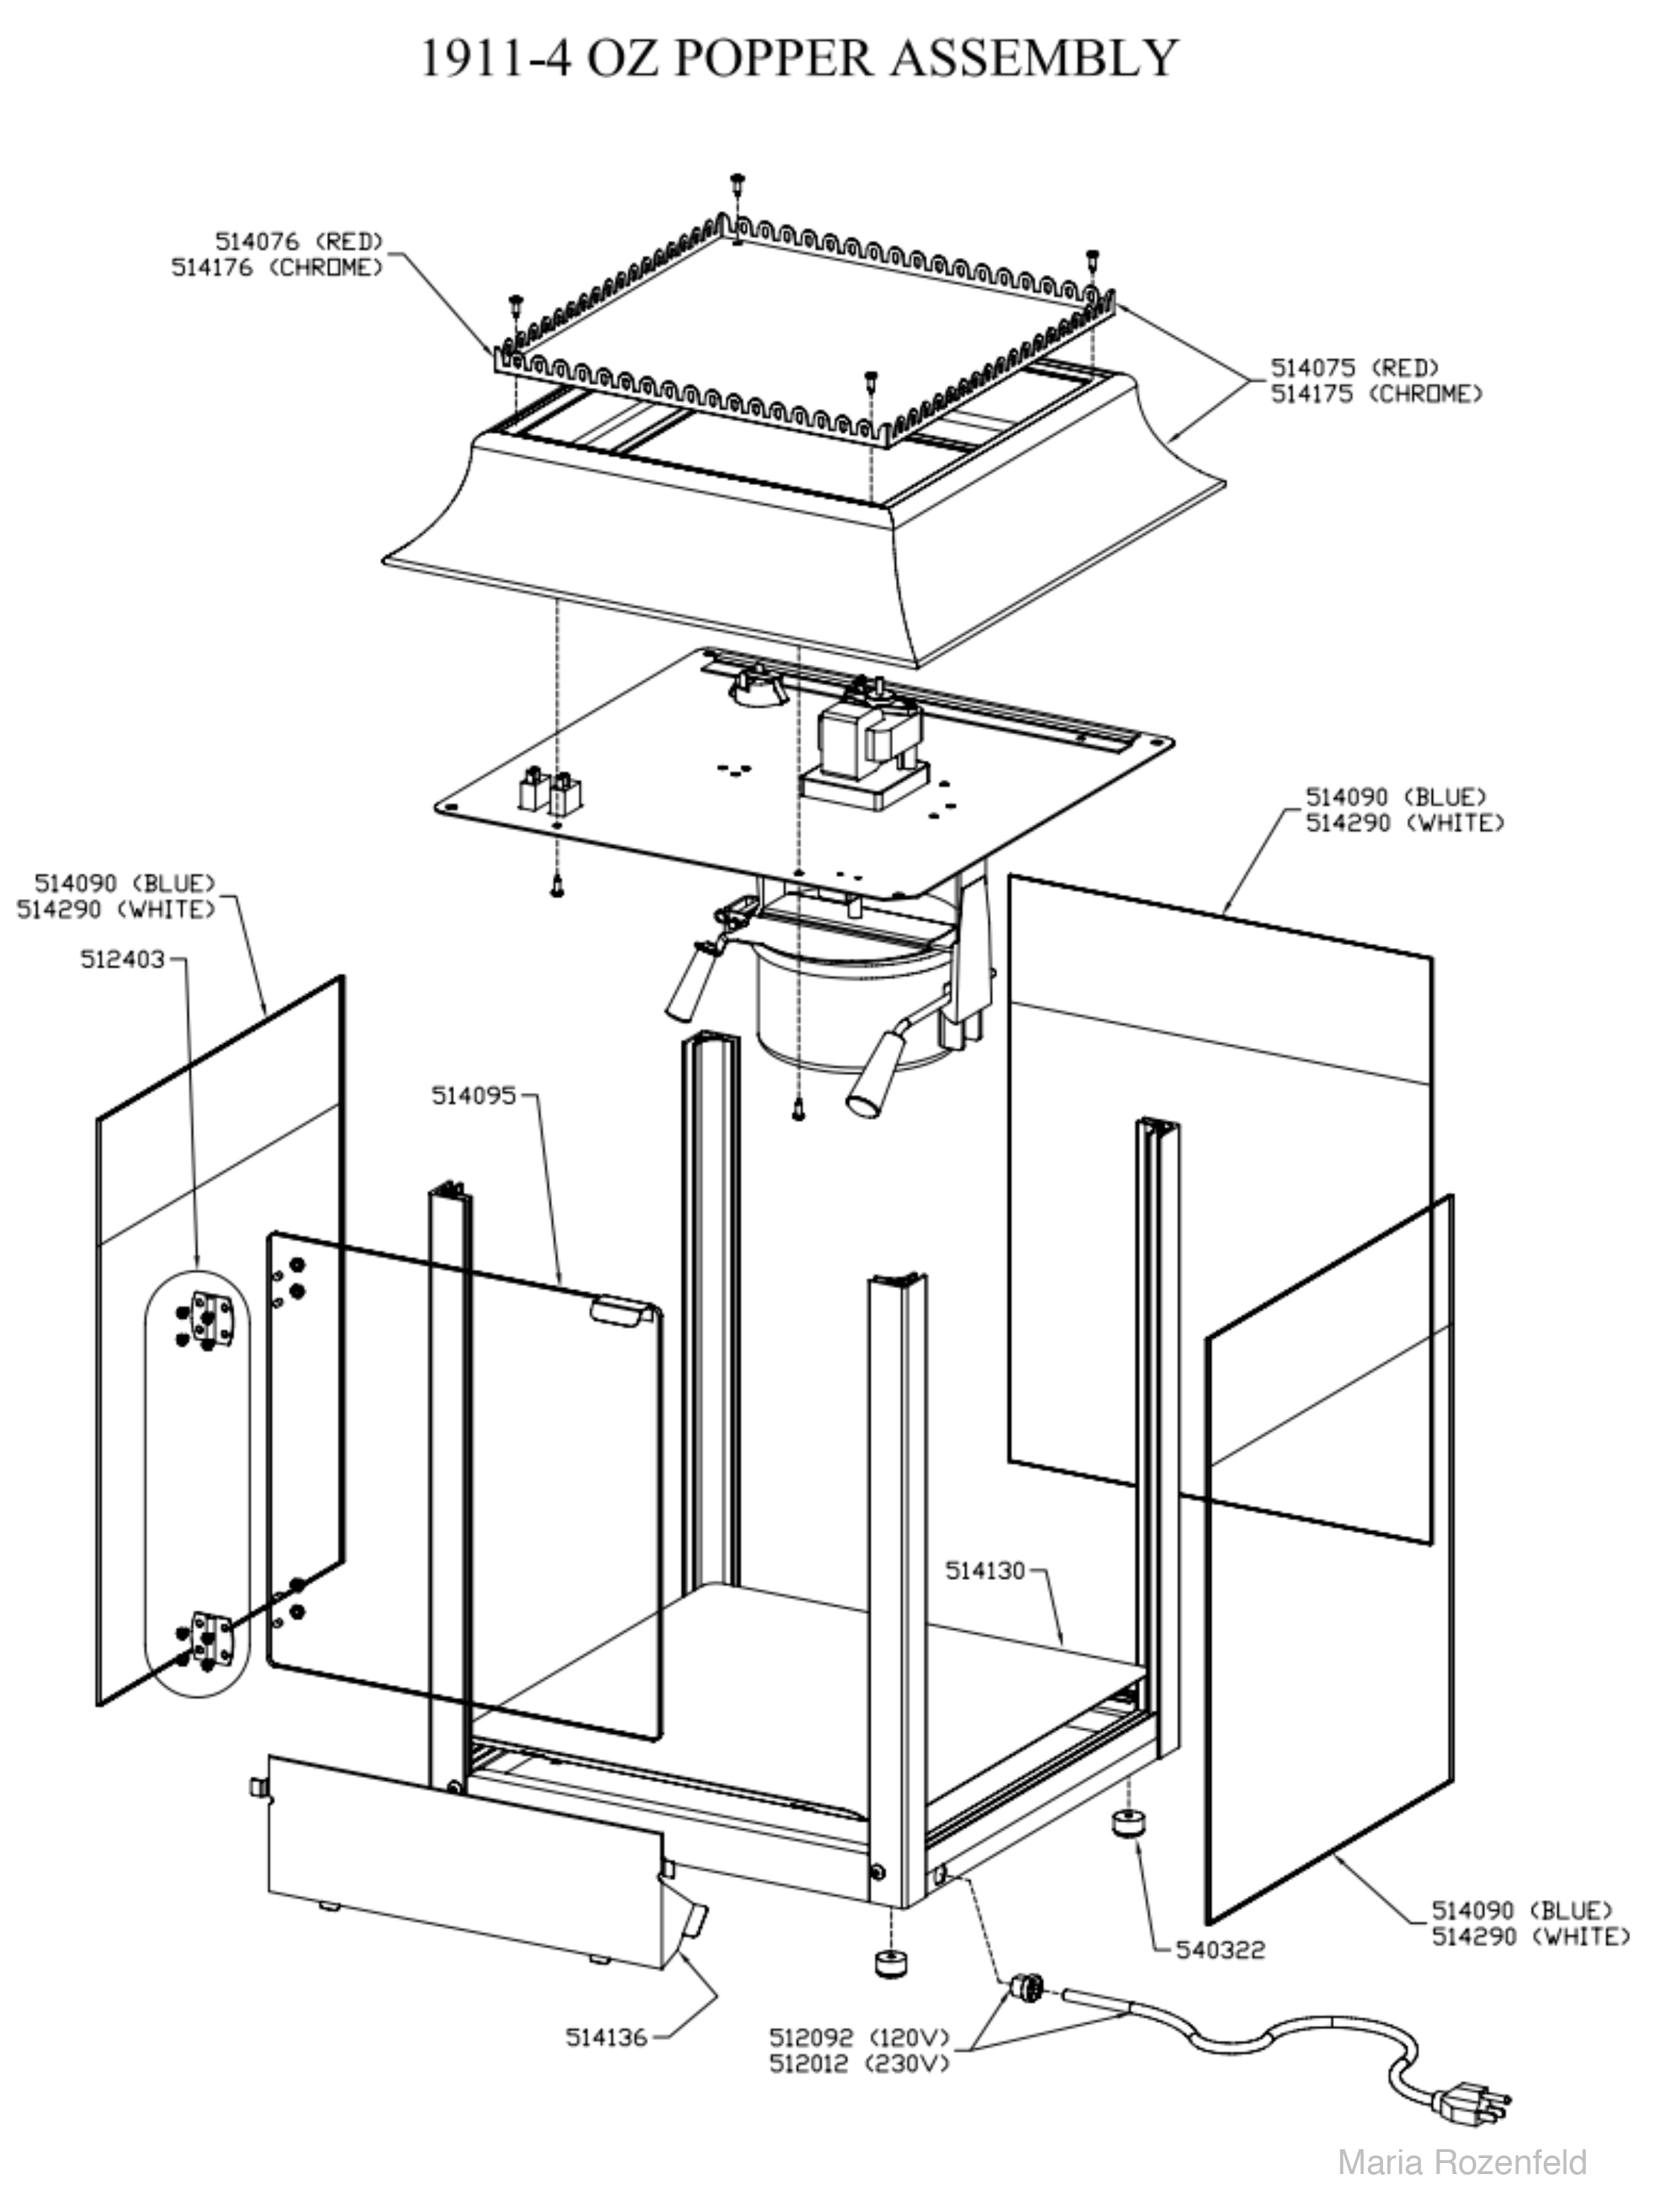 Commercial Popcorn Popper Wiring Diagram - Data Schema •